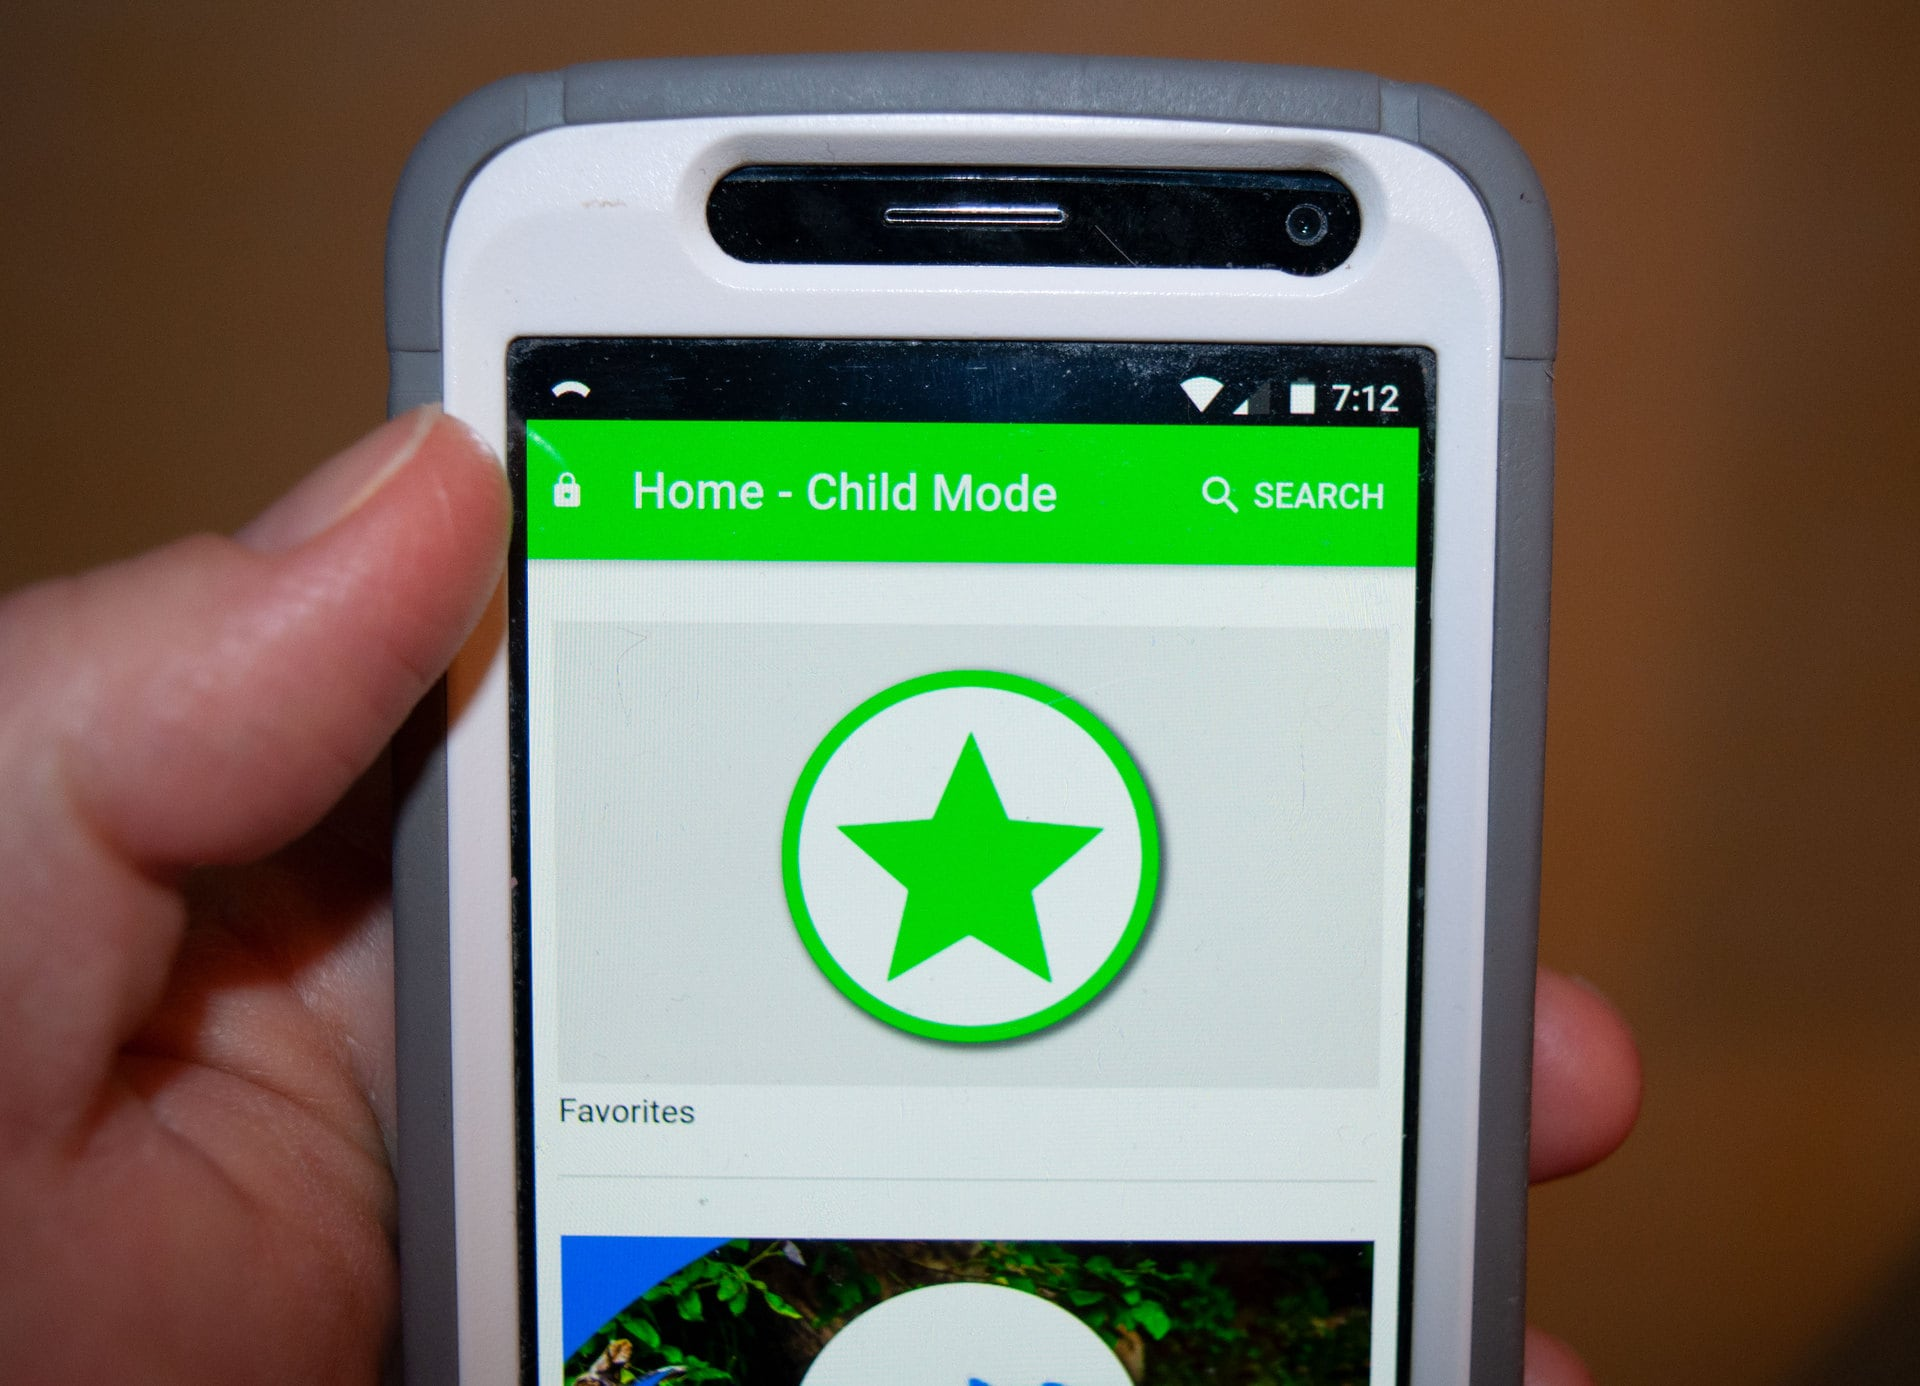 Protect Young Eyes with YouTube Parental Controls App